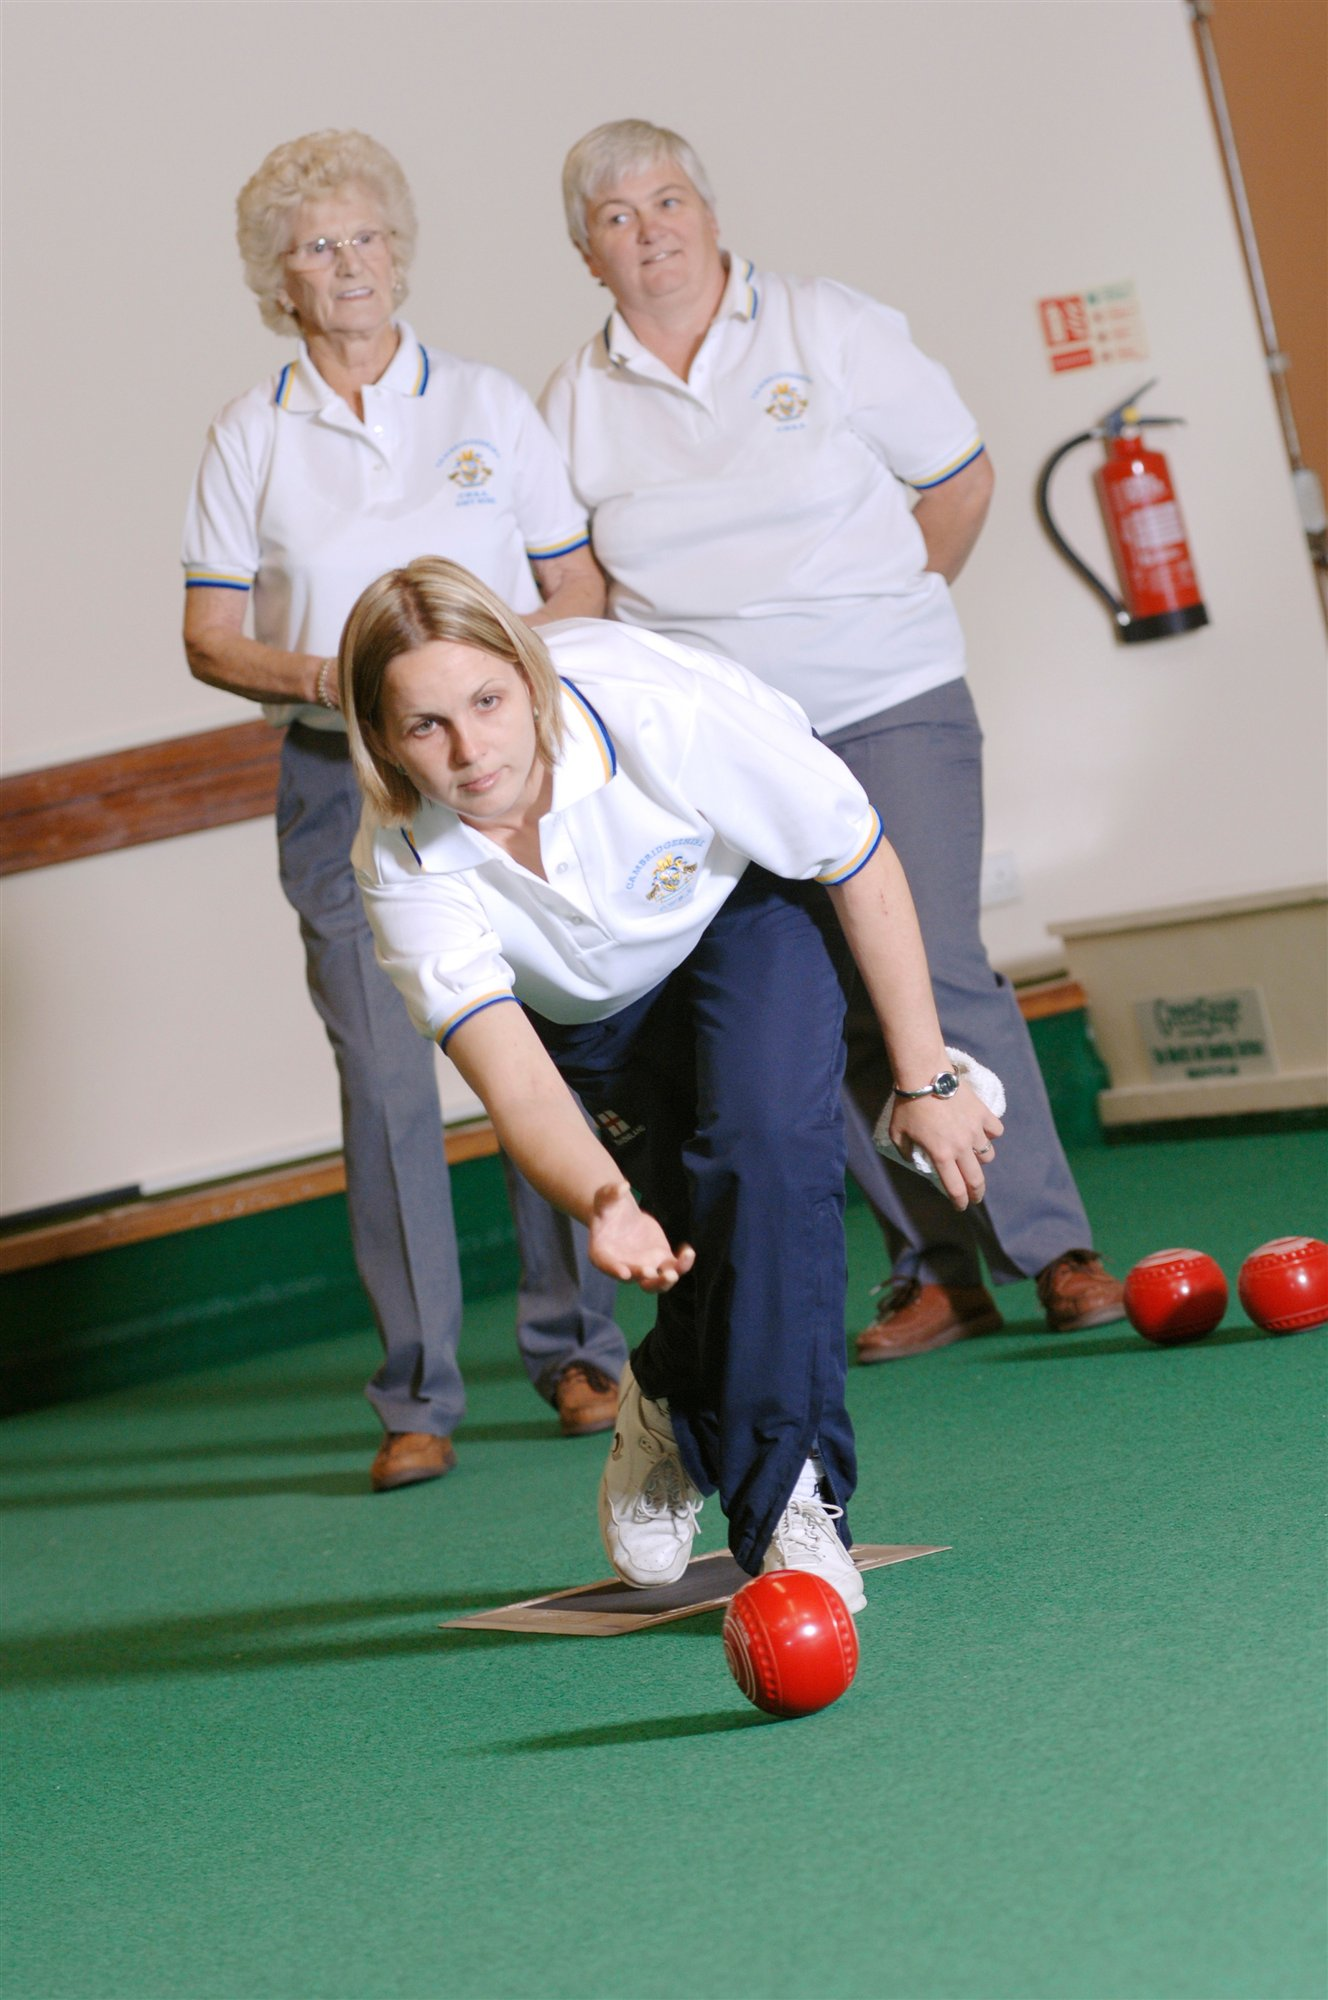 woman bowling a ball indoor bowls watched by two others